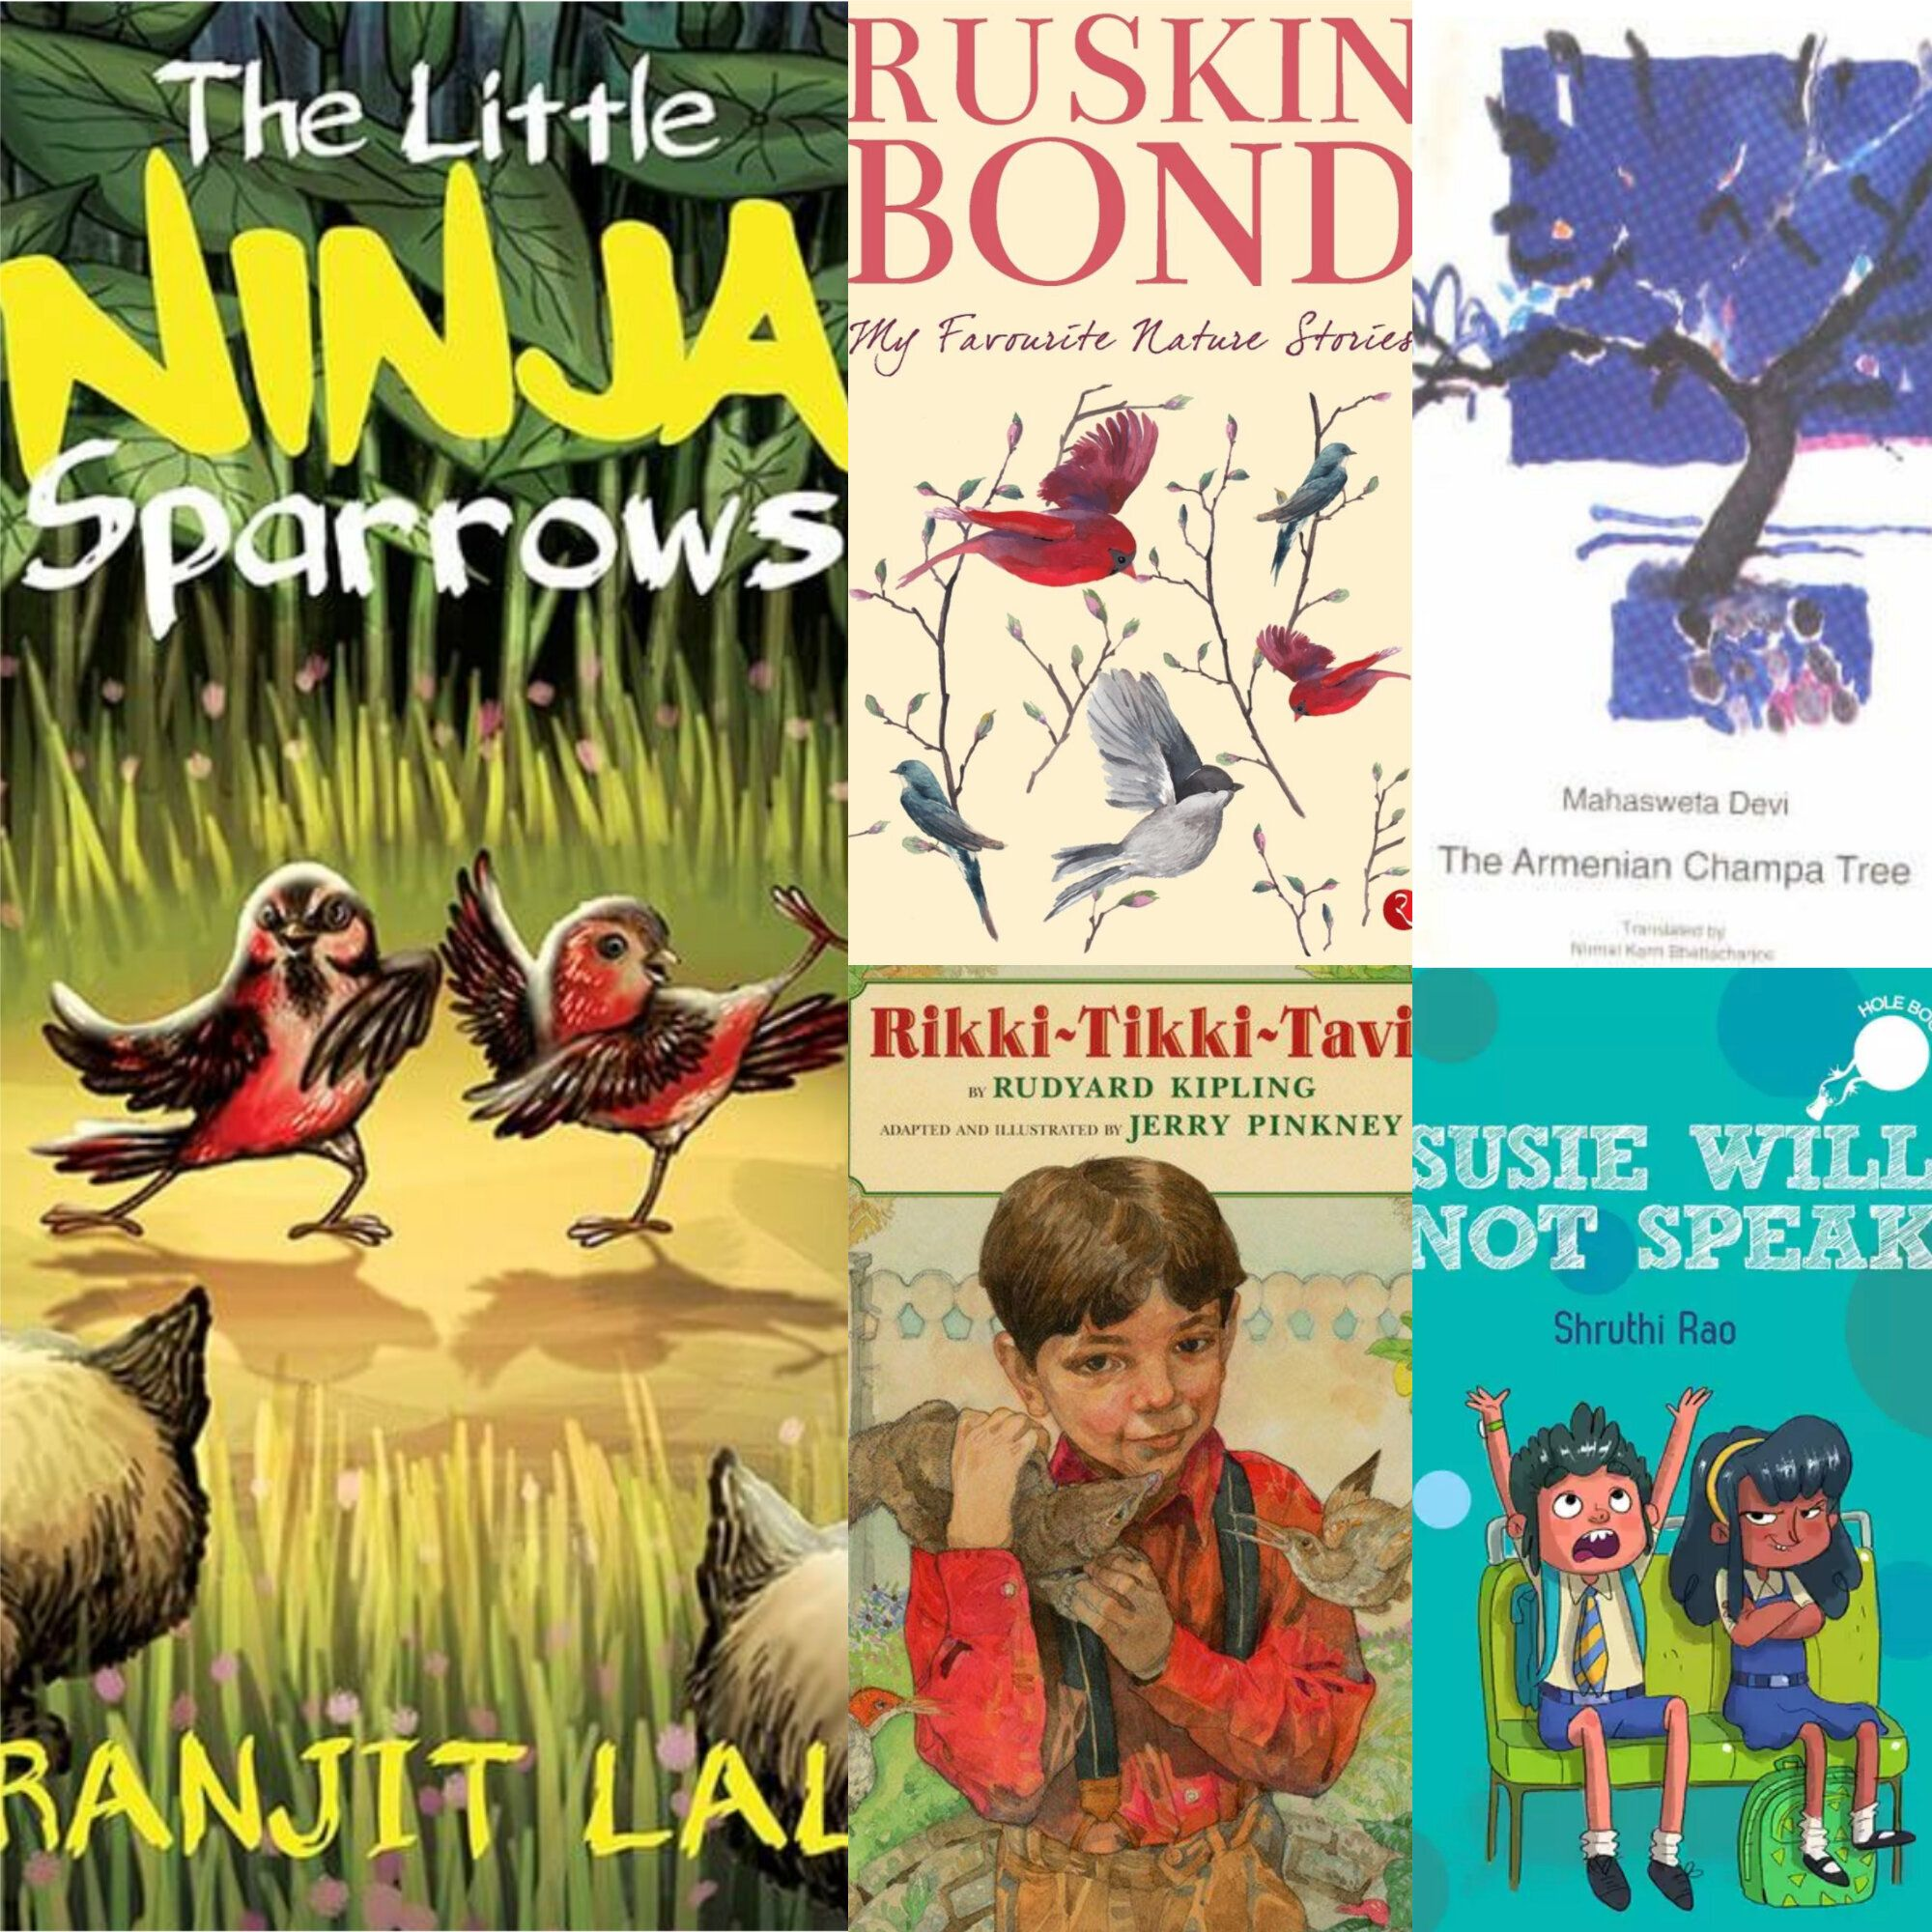 Want Your Child To Read More This Summer? A Writer Tells You